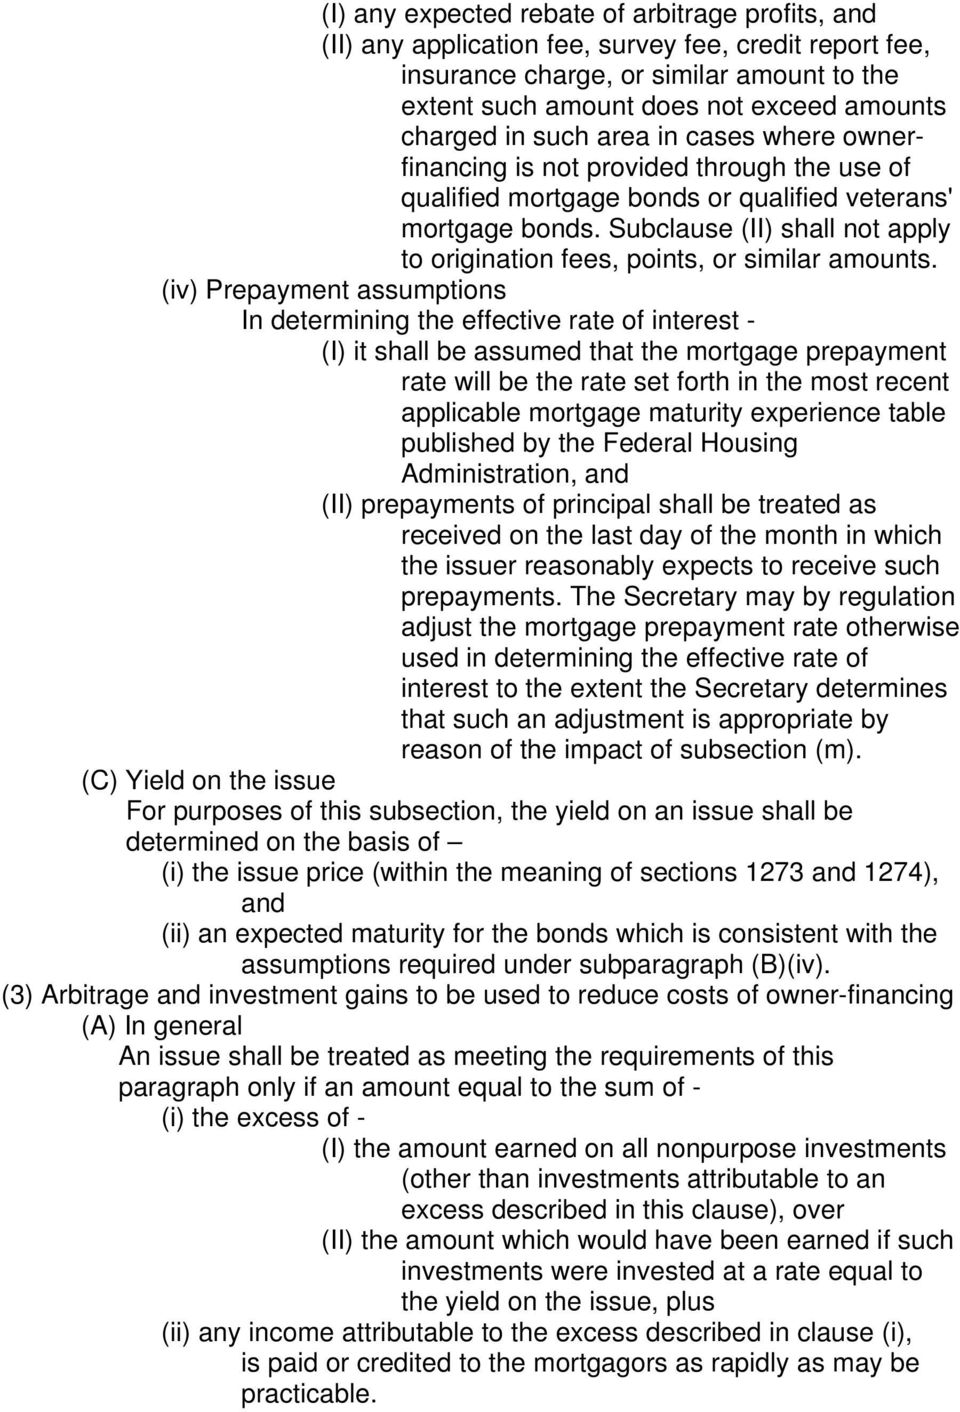 Subclause (II) shall not apply to origination fees, points, or similar amounts.